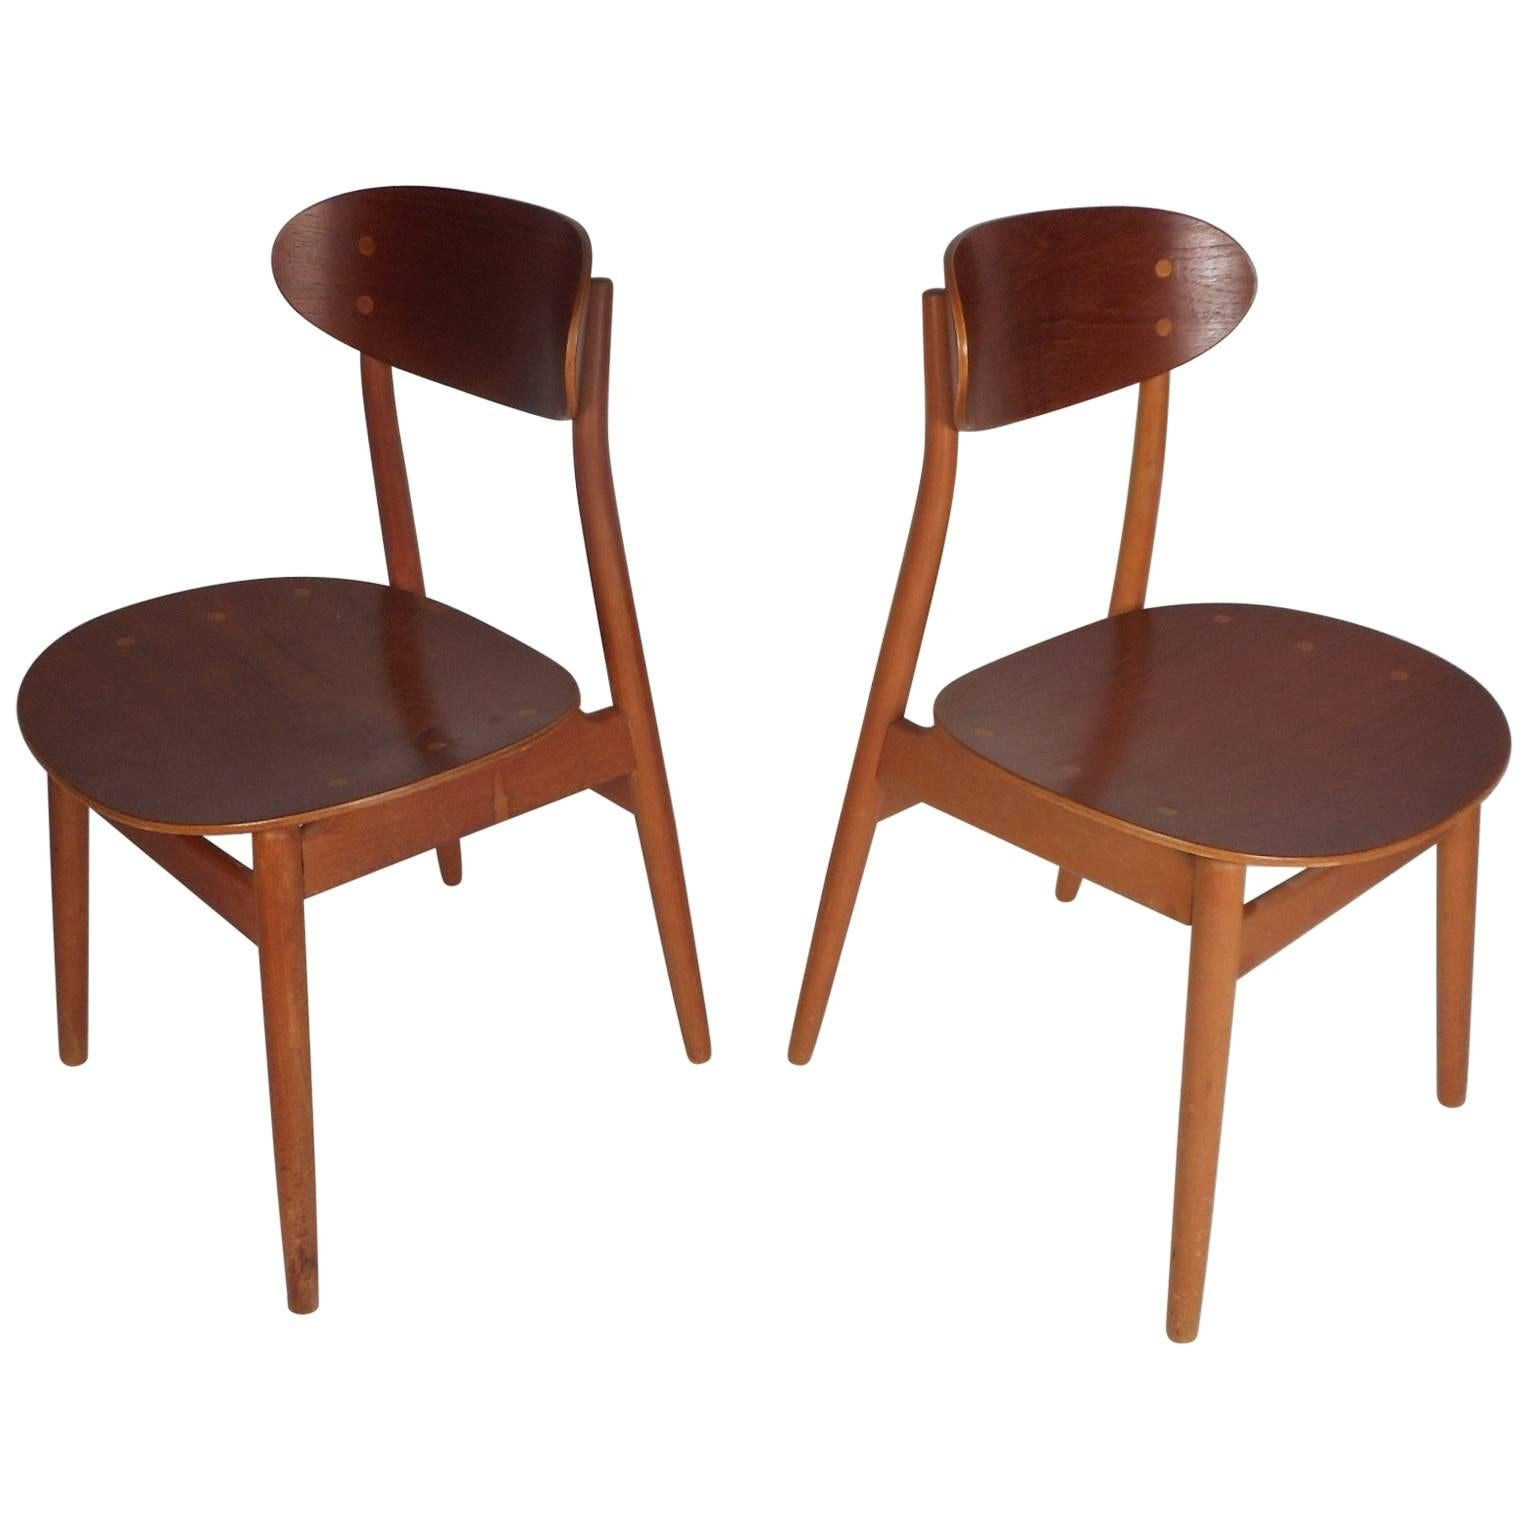 Attirant Pair Of Mid Century Modern Danish Chairs For Sale